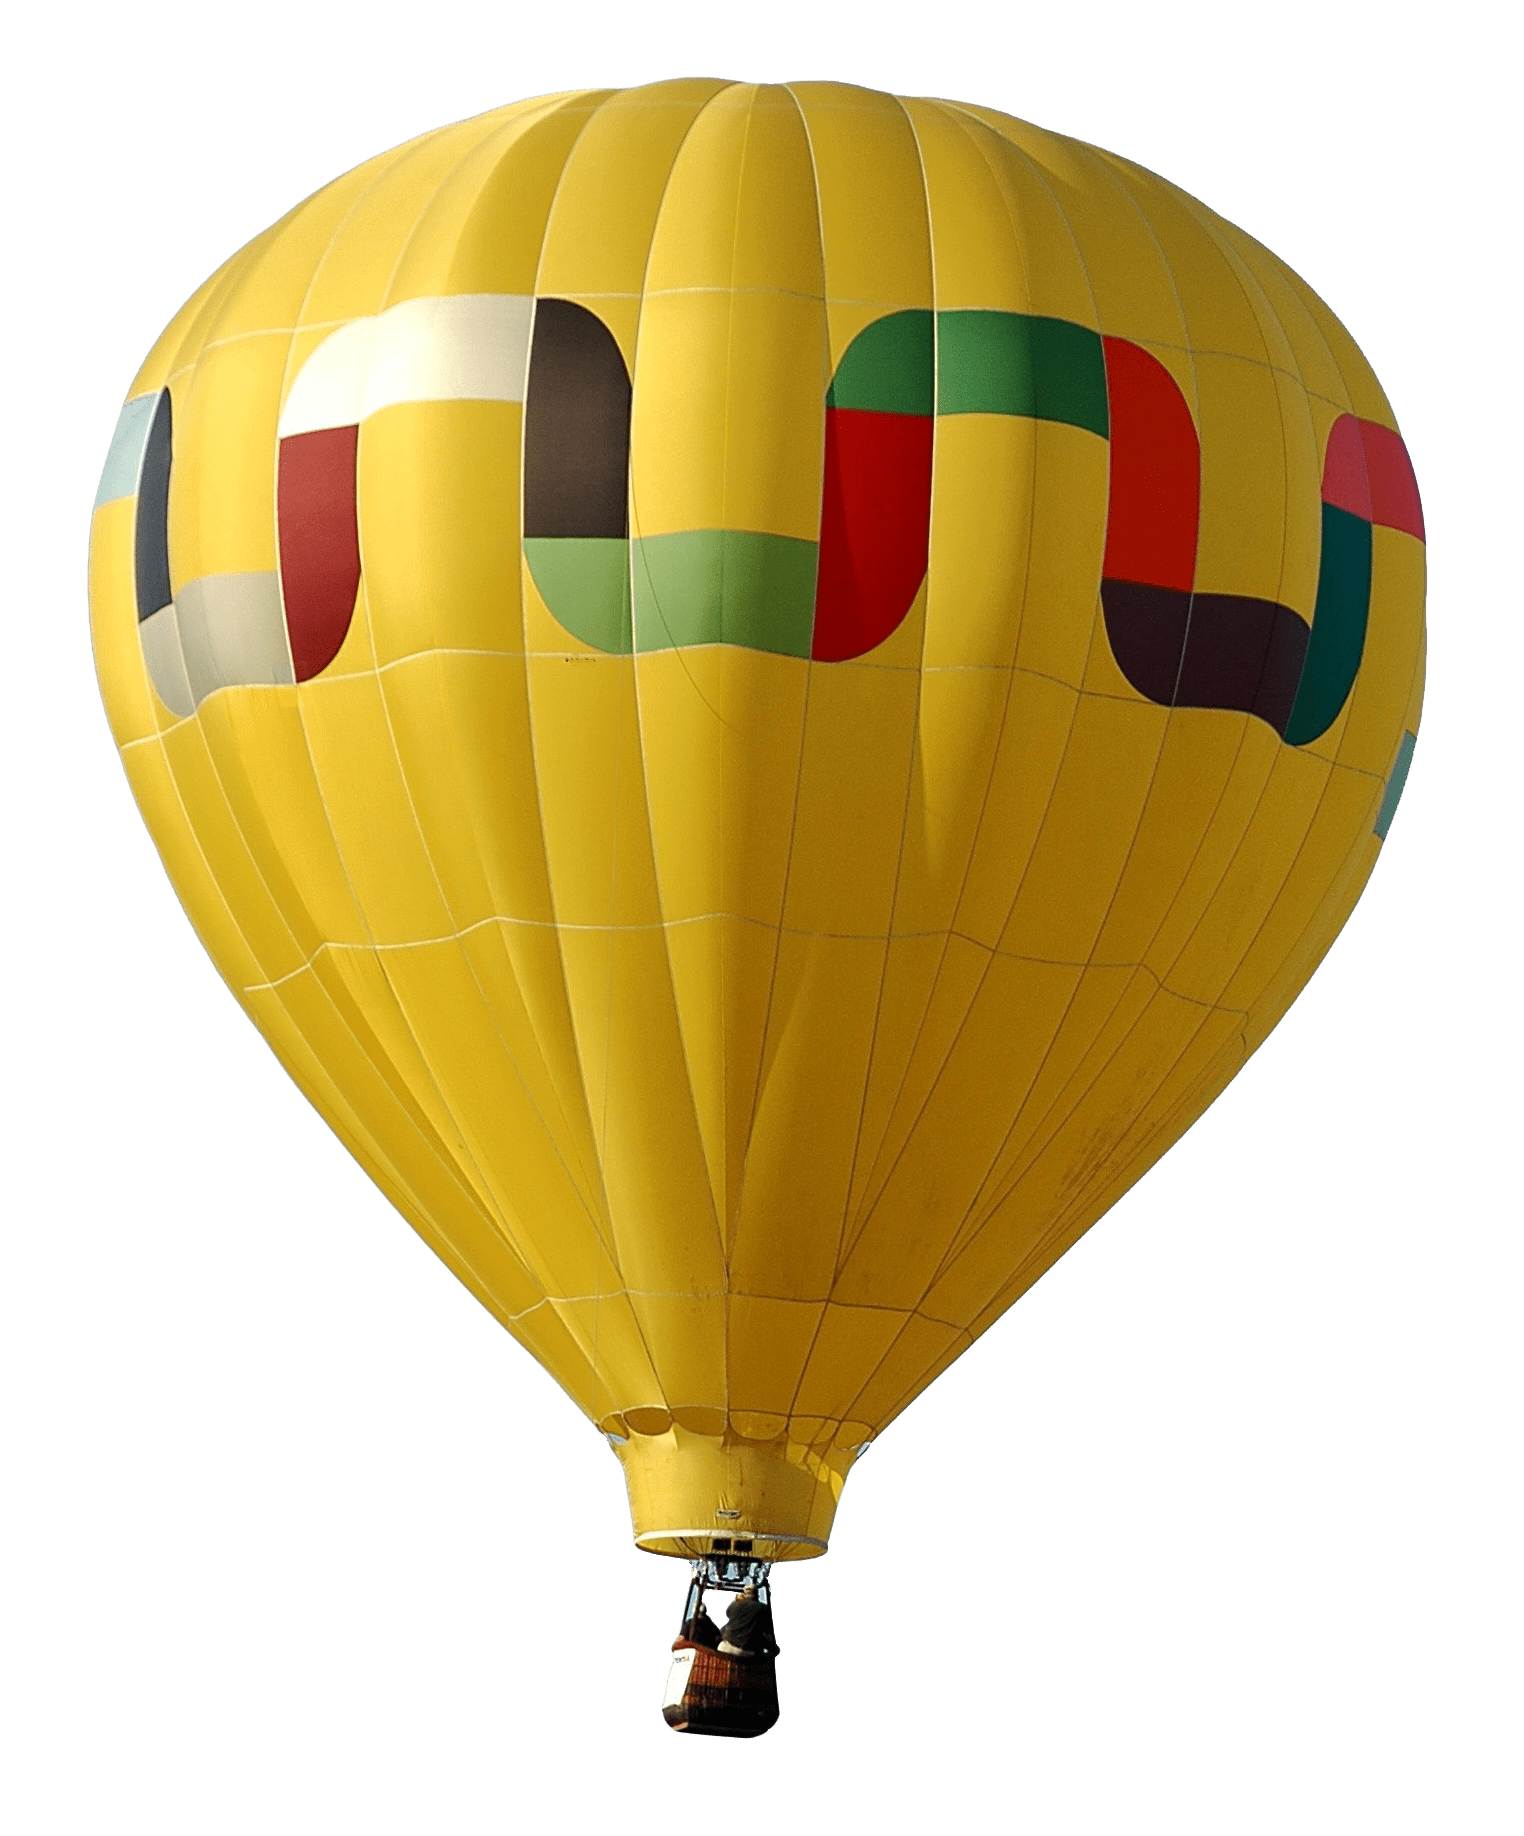 Yellow stickpng download transport. Hot air balloon png transparent background clip art black and white library